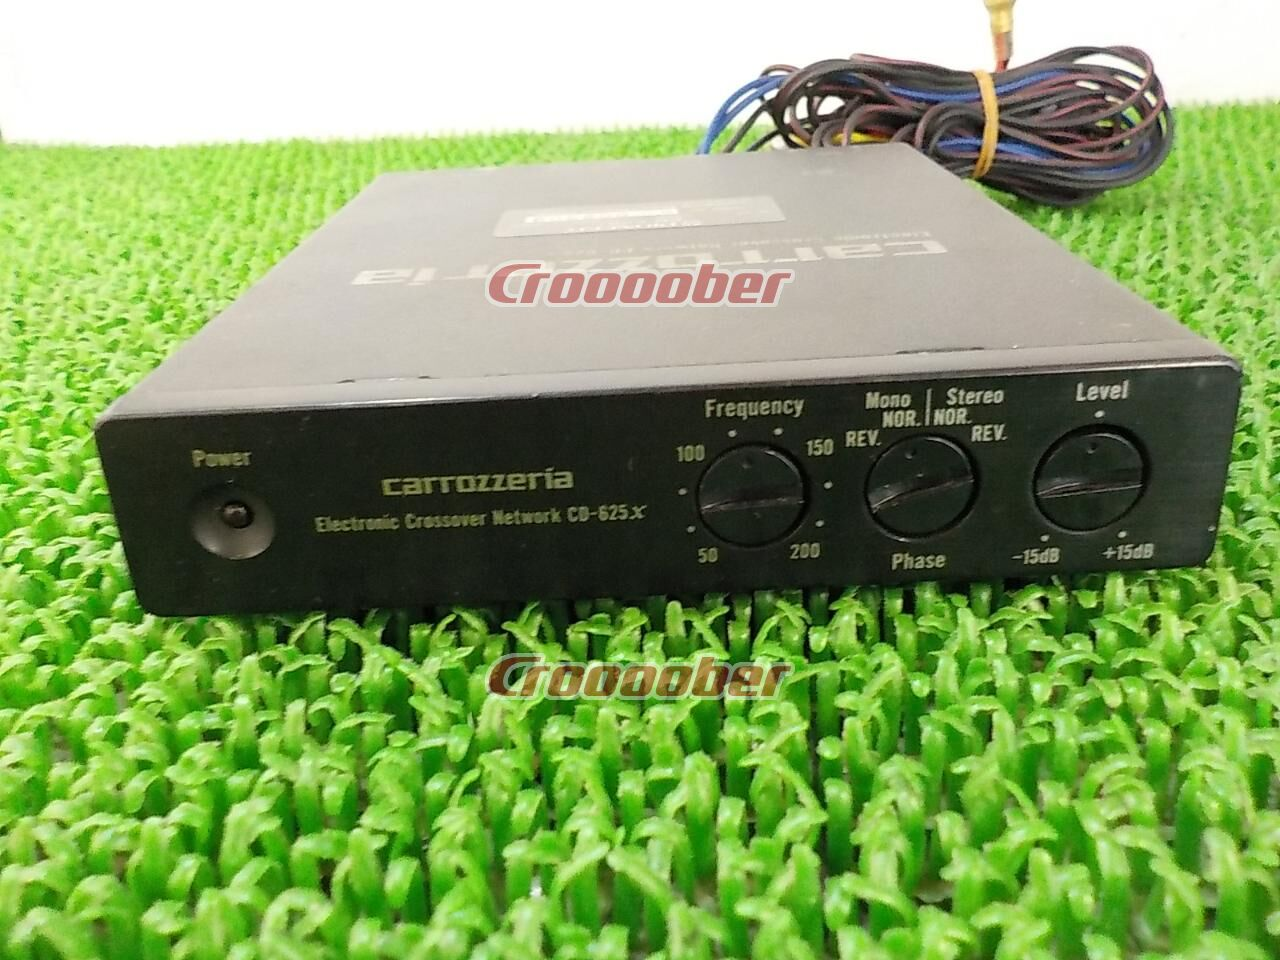 Cd Rek Accessoires.Cd 625x Control The Crossover Sound Amplifier Accessories Croooober